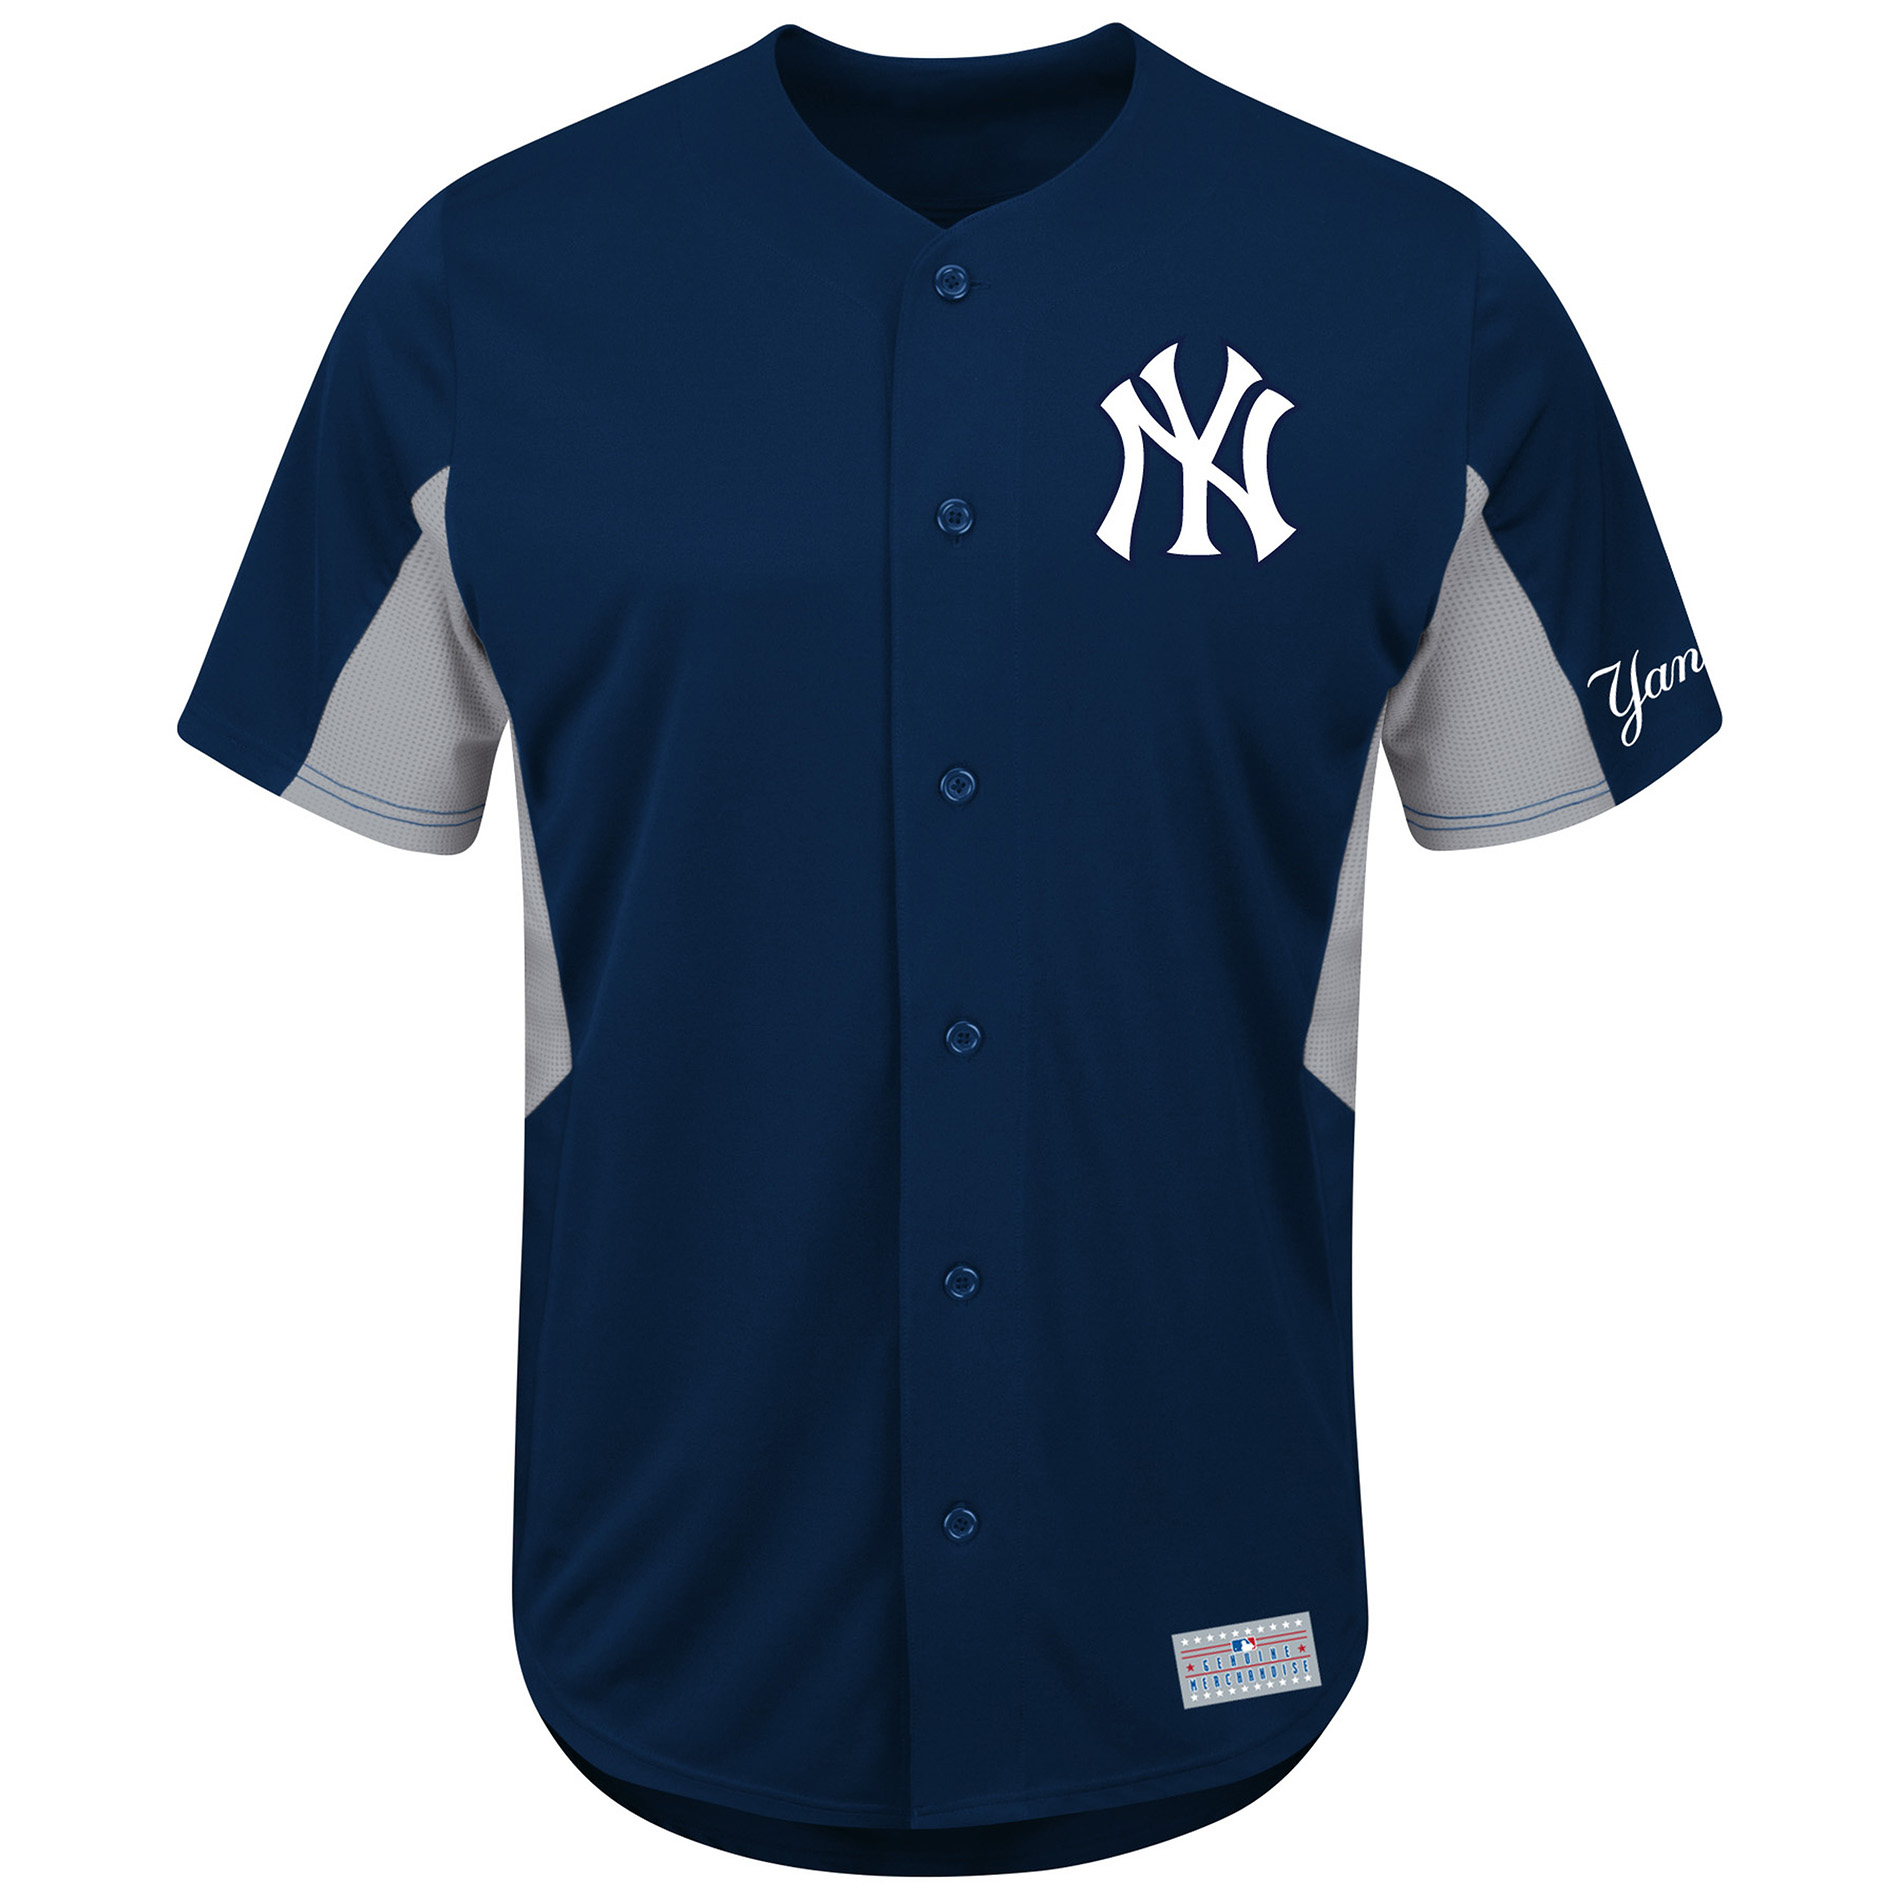 MLB Men's New York Yankees Jersey - Judge 99